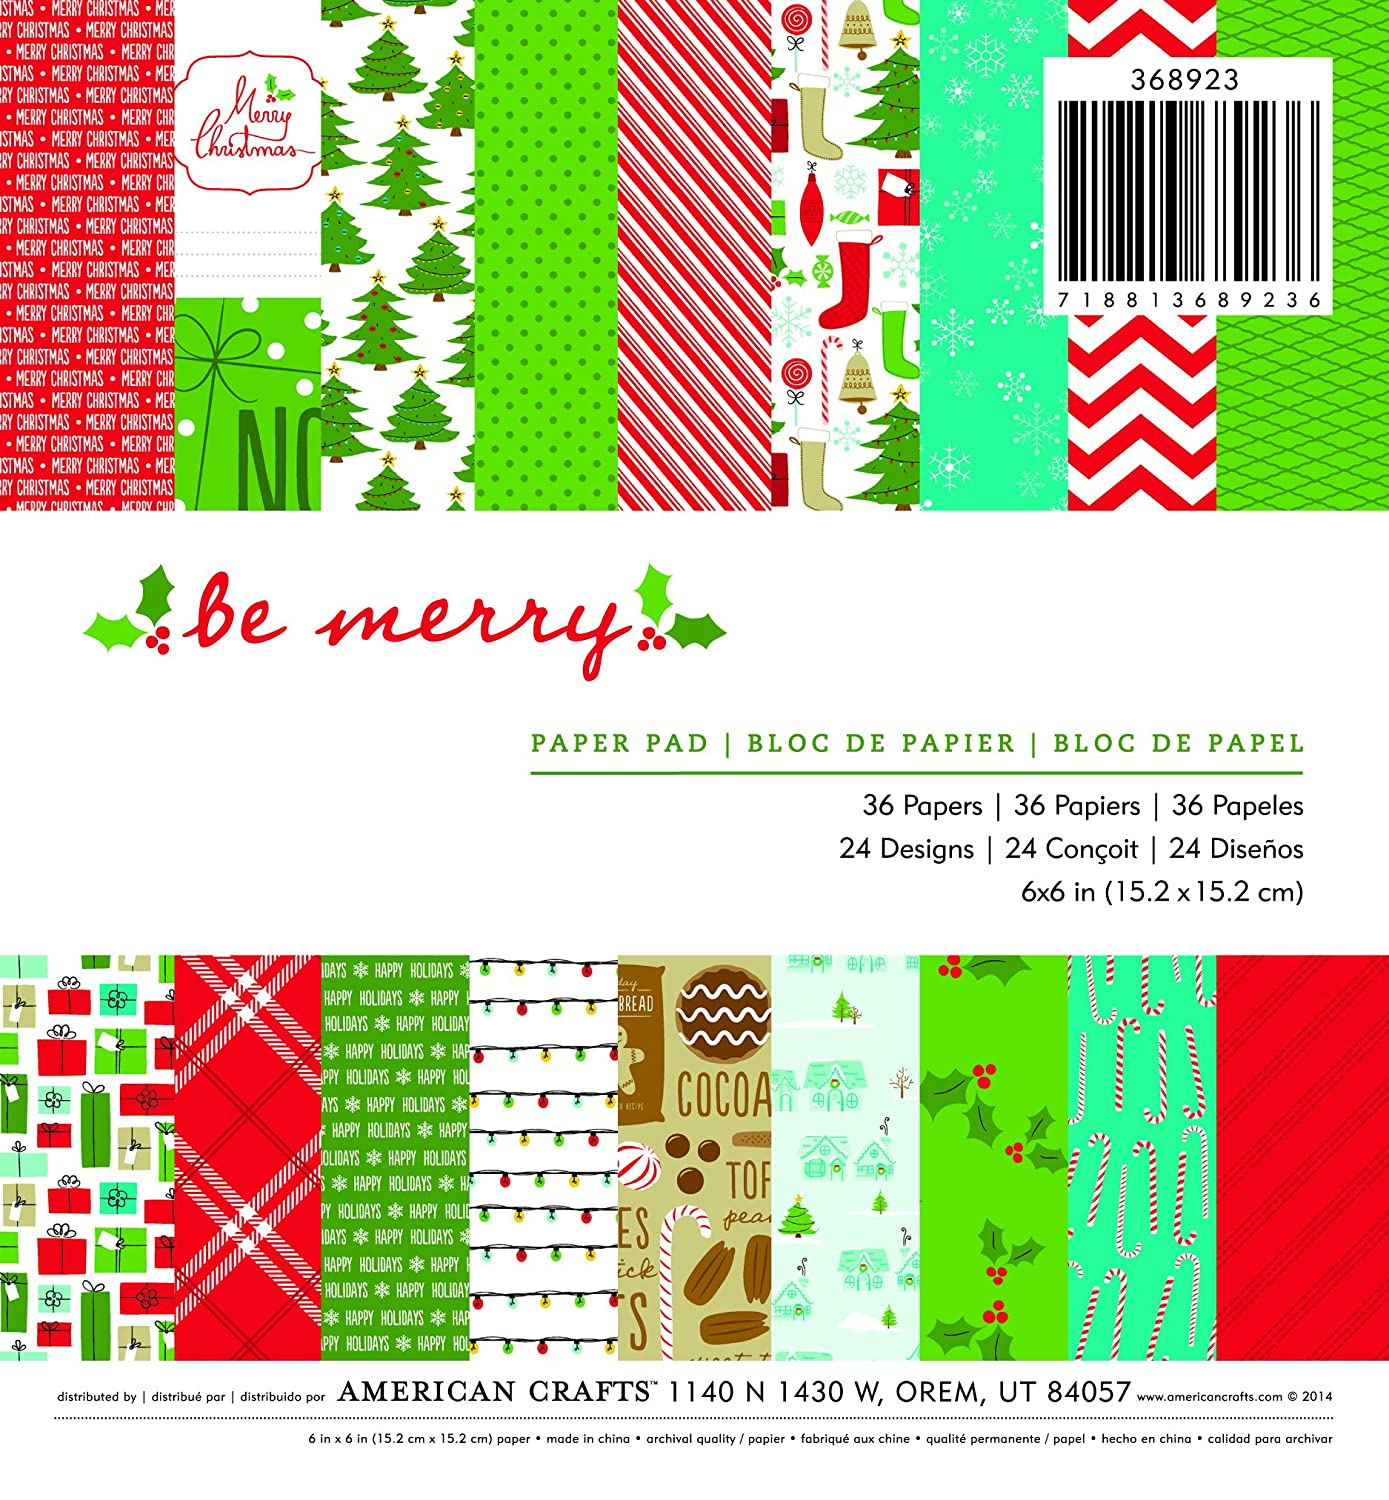 American Crafts-Pad 6x 6 3Be con scritta Merry Christmas 98368